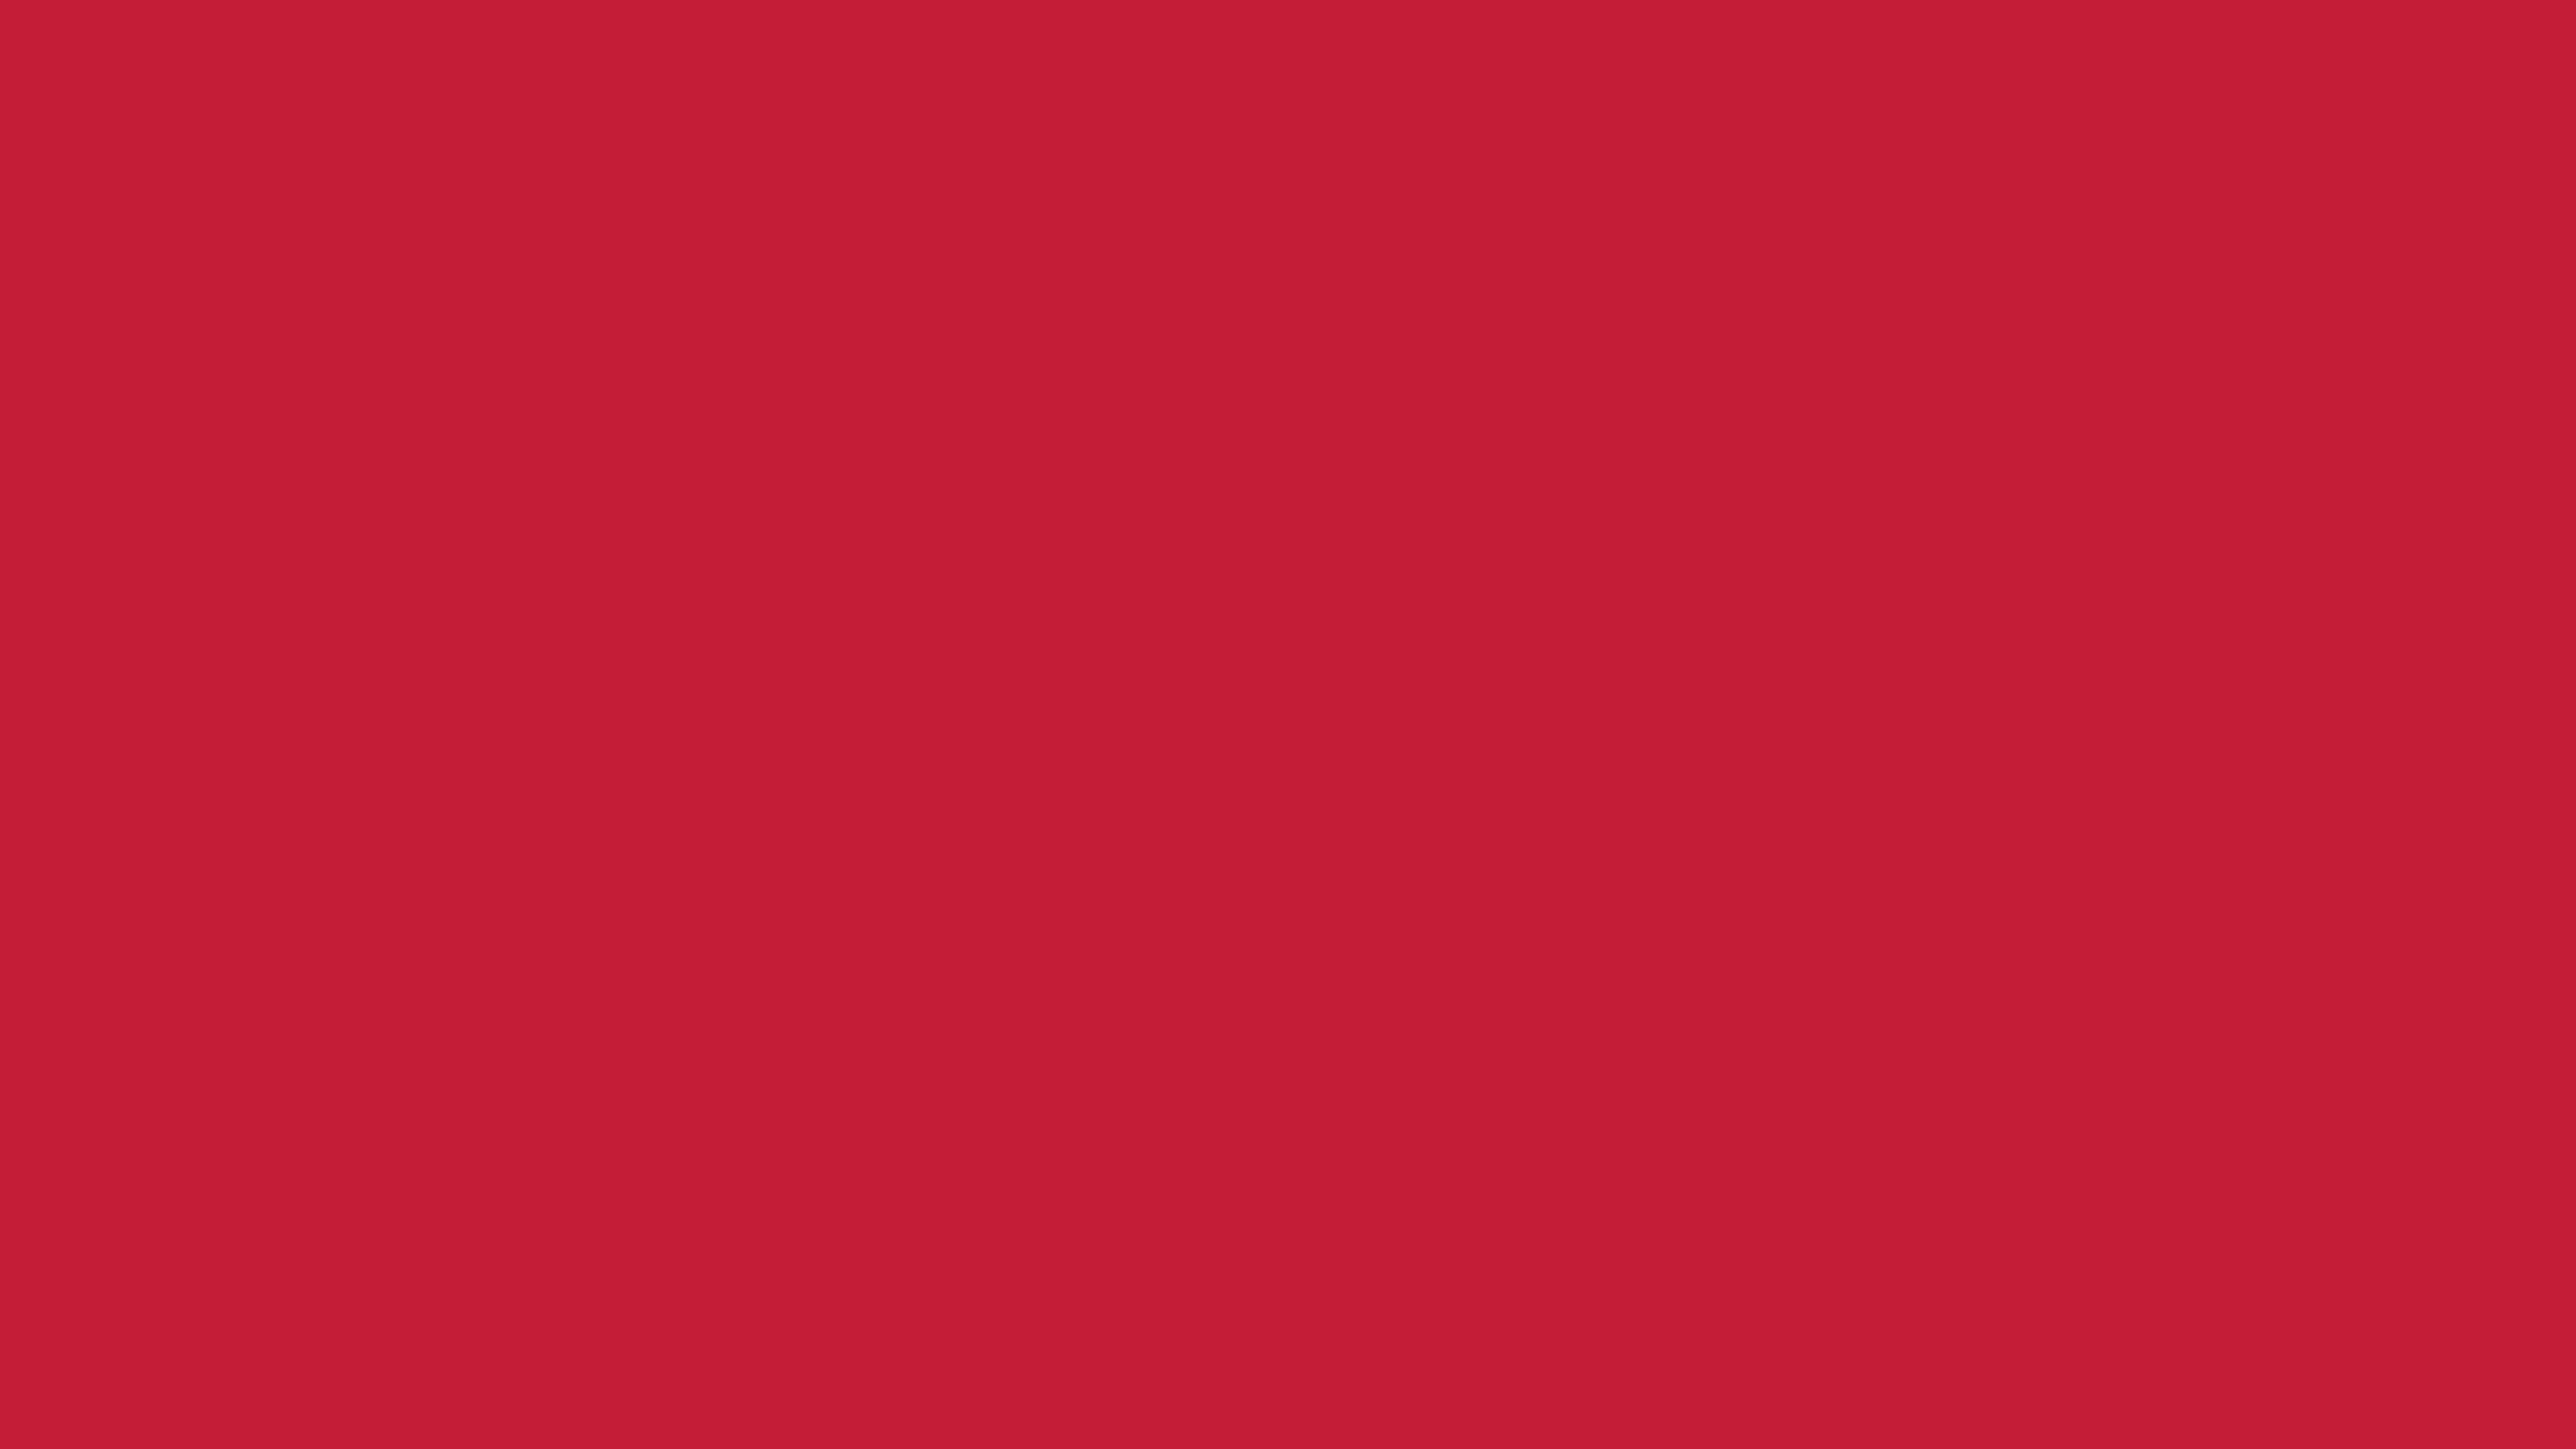 3840x2160 Cardinal Solid Color Background